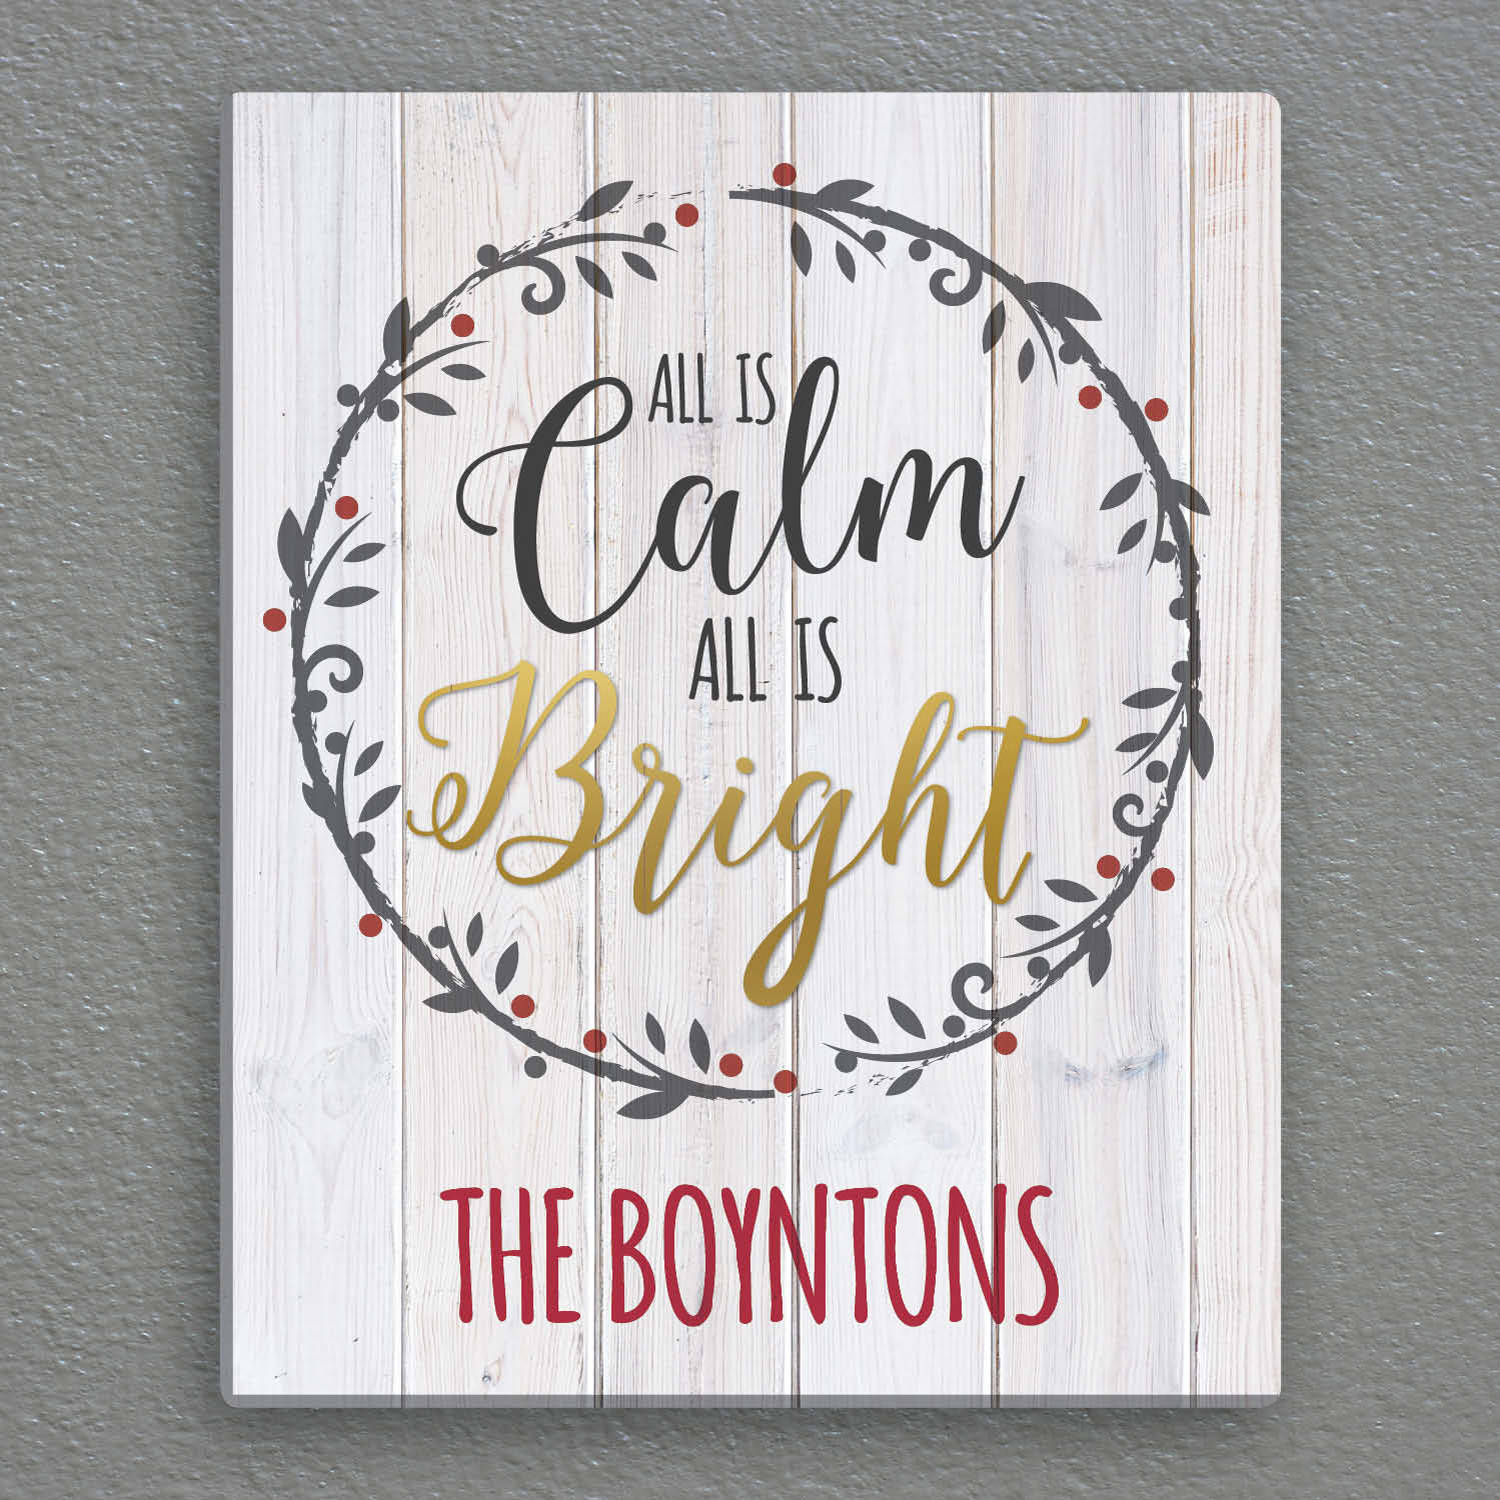 "All Is Calm All Is Bright Personalized 16"" x 20"" Canvas"